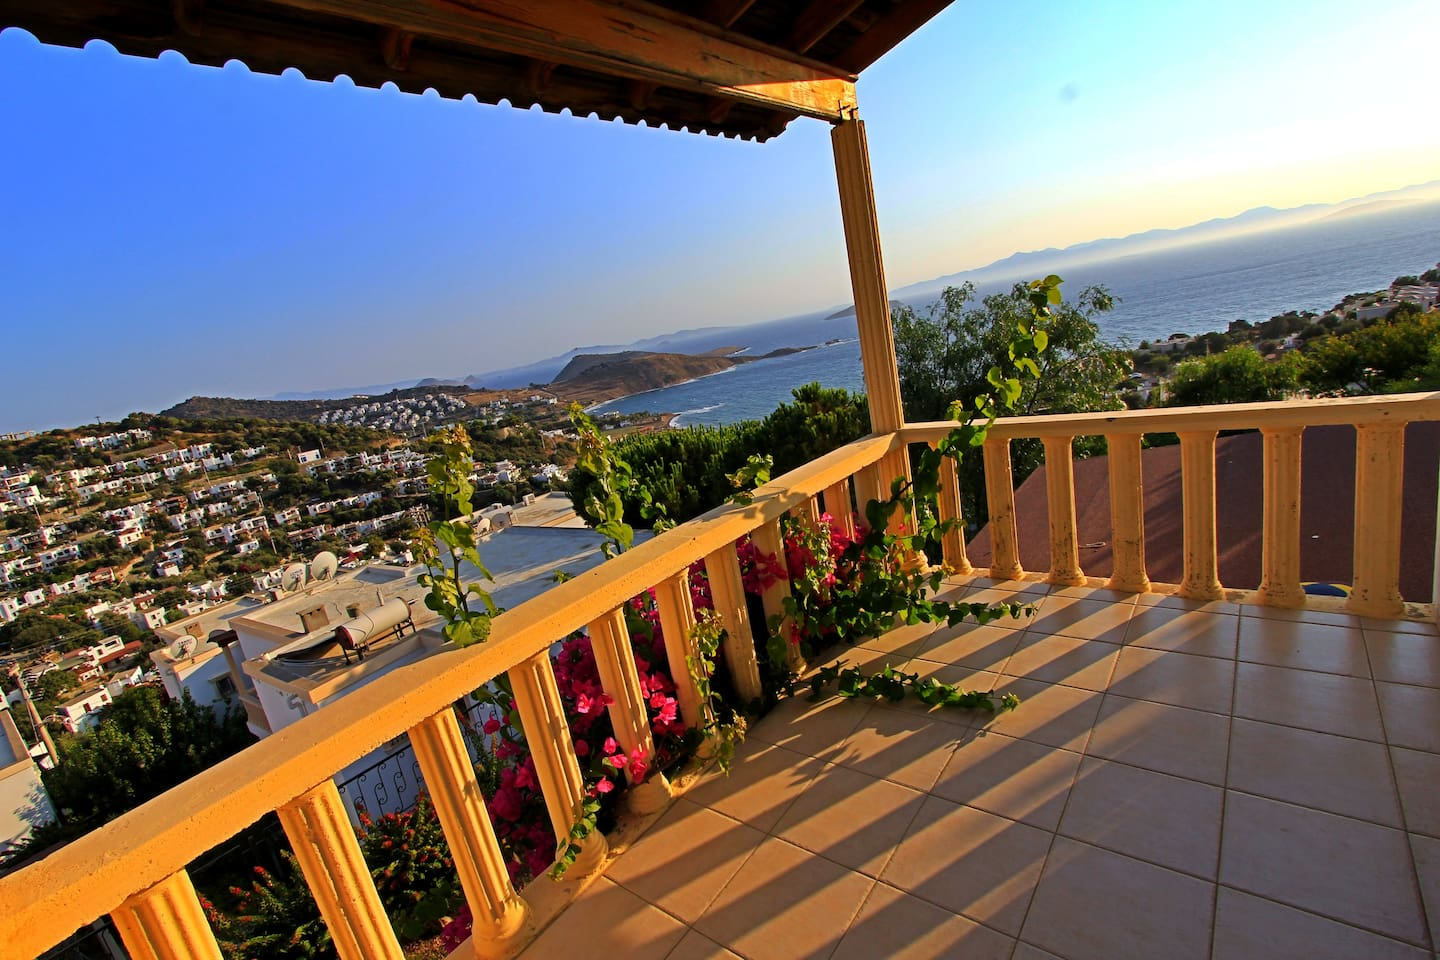 Terrace of the upper floor and one of the most beautiful sunsets you can see!